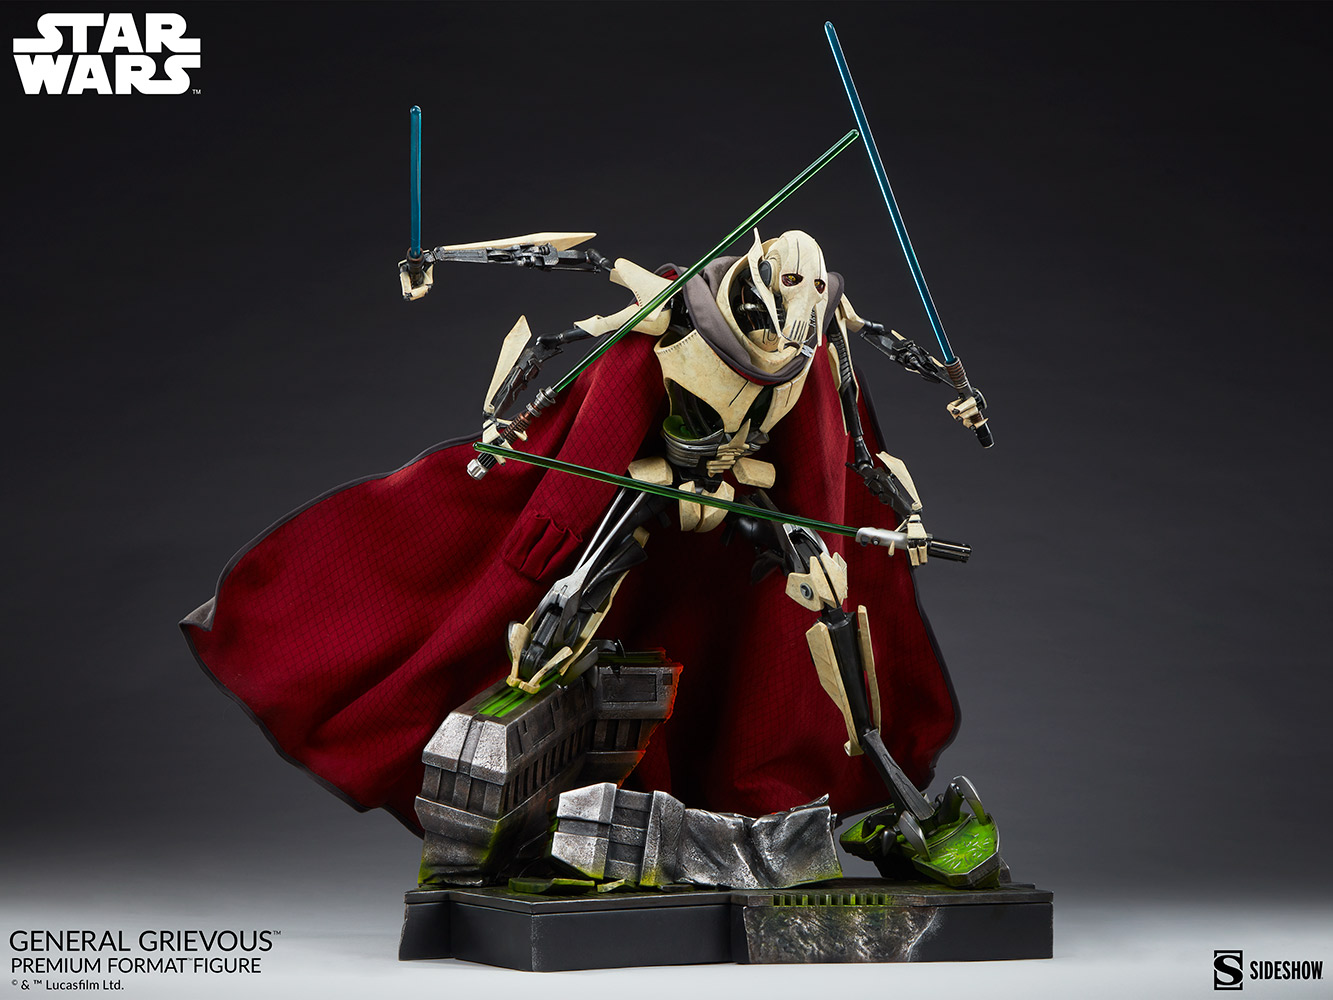 Star Wars: Revenge of the Sith : General Grievous Premium Format Figure General-grievous_star-wars_gallery_6155e6623f0c5